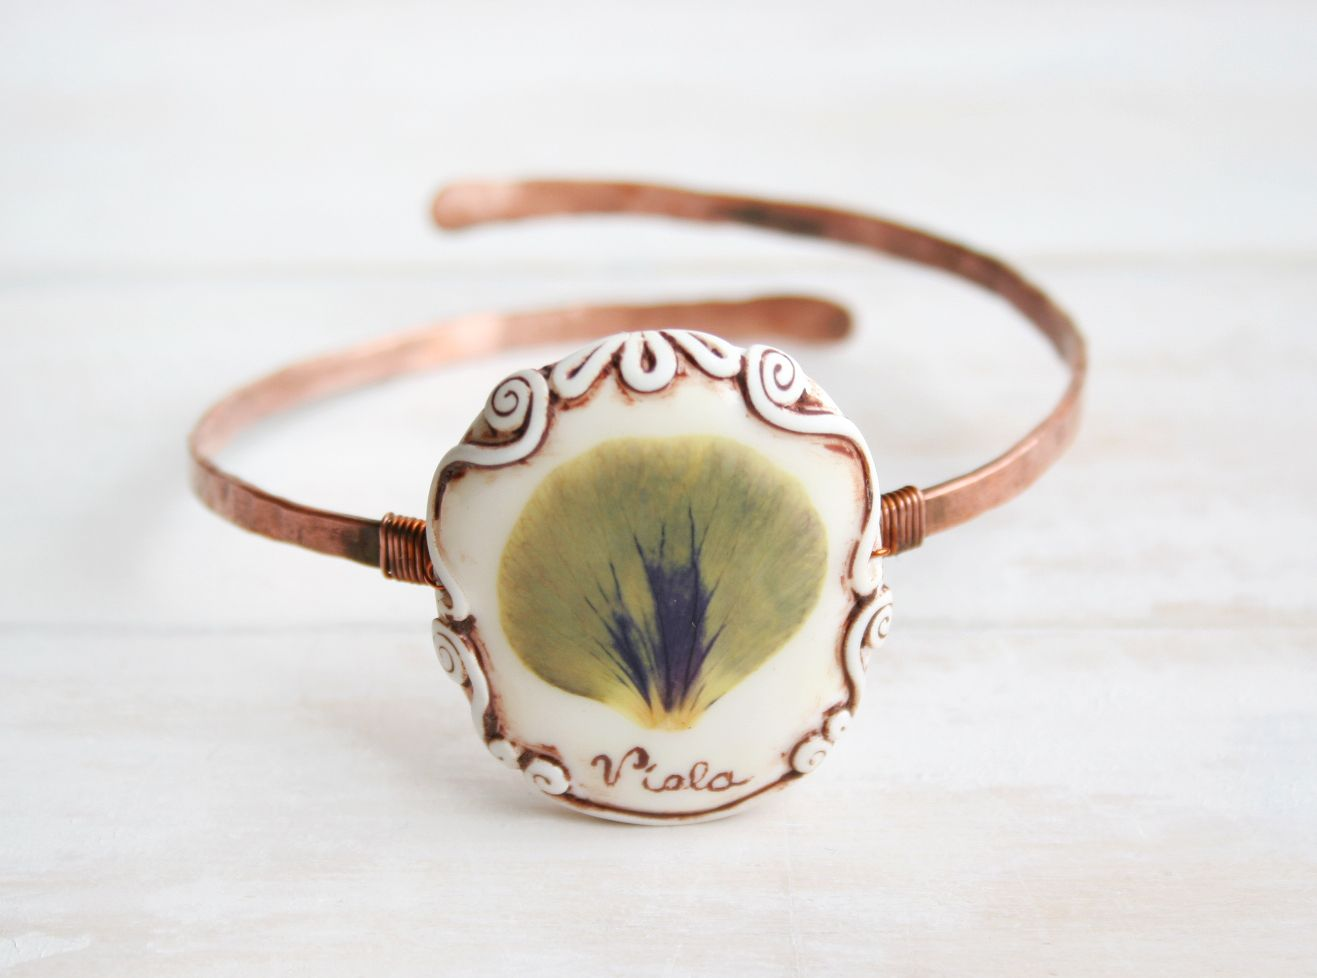 Real flower and copper bracelet handcrafted shabby design jewelry